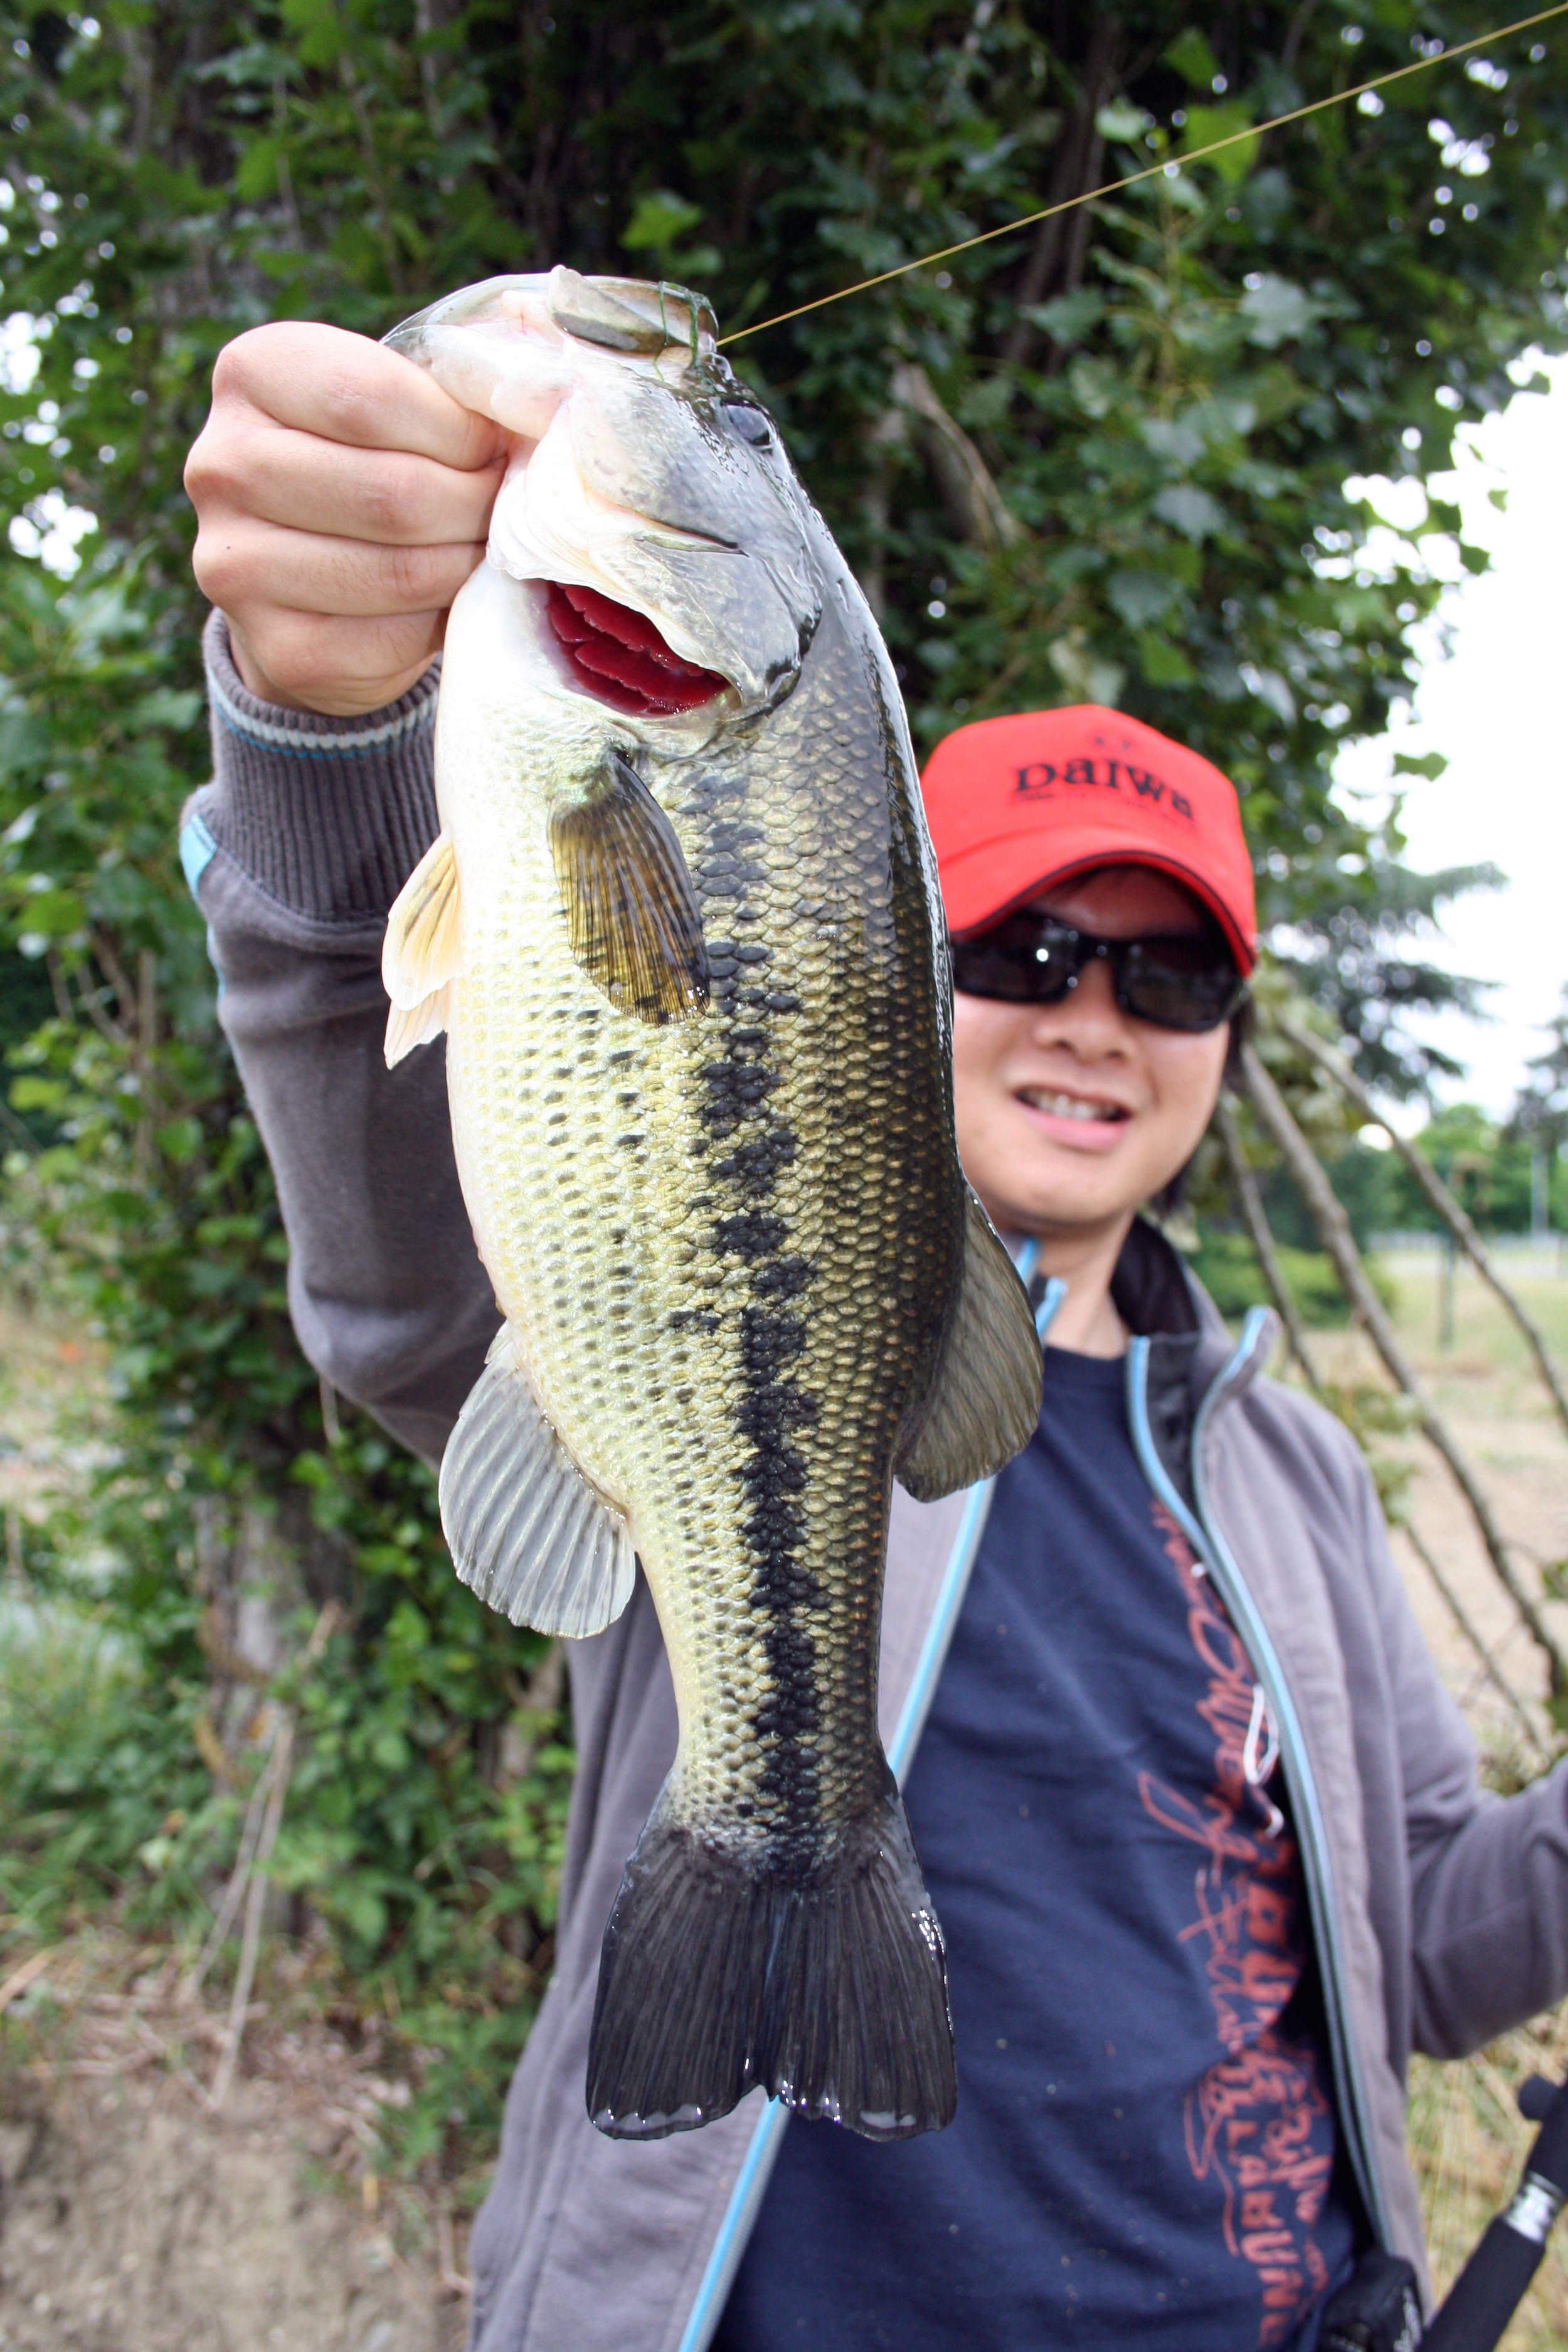 Pic. 4.  Another solid fish! I caught this fish on a wacky rigged 4-inch Senko on 6lb test Sufix Siege monofilament in clear water.